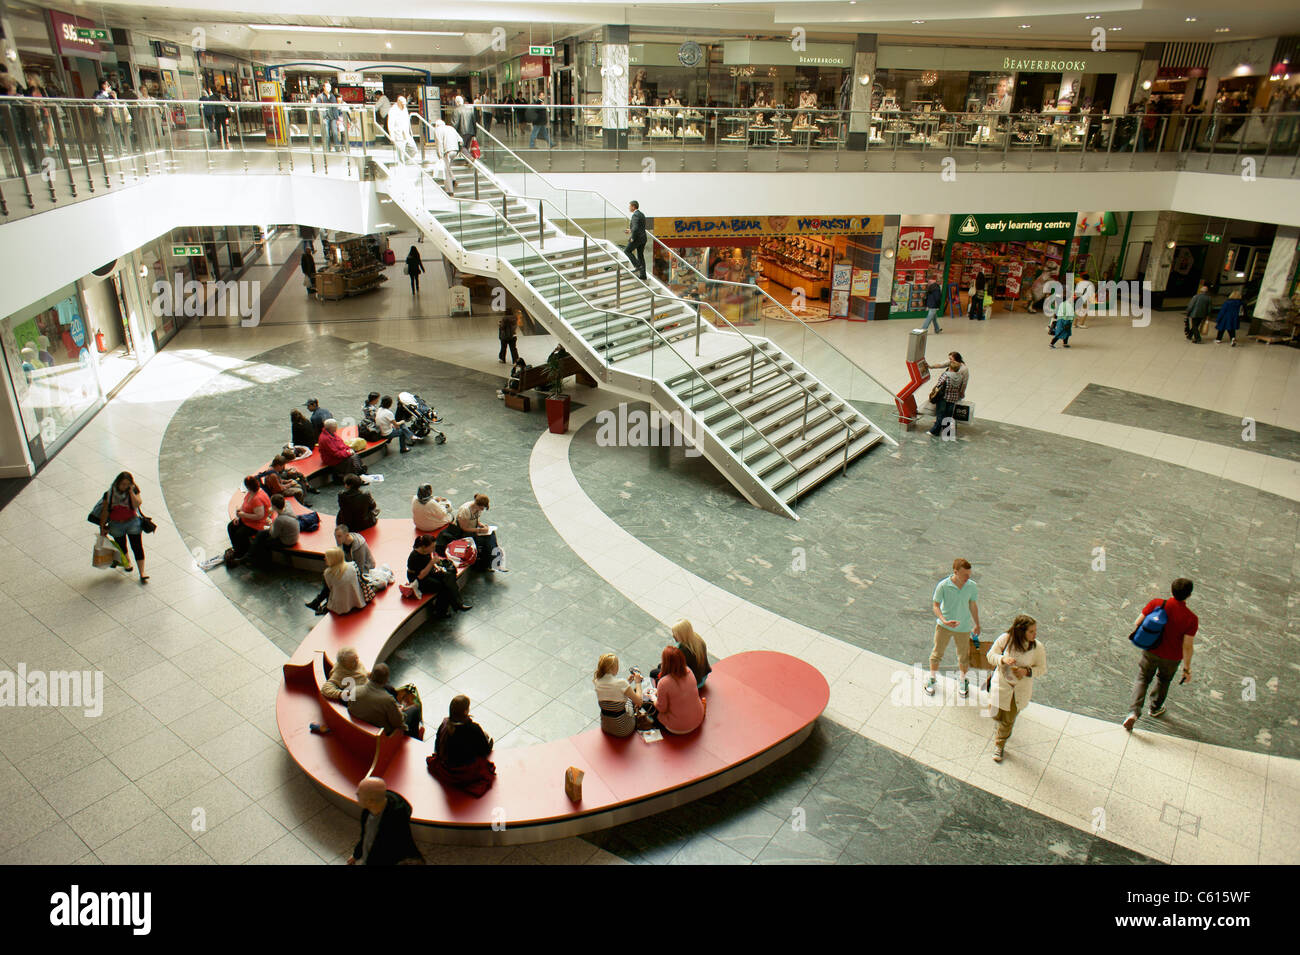 Arndale Centre, Manchester, England. Shoppers and retail outlet stores shops in the pedestrianised city centre shopping - Stock Image